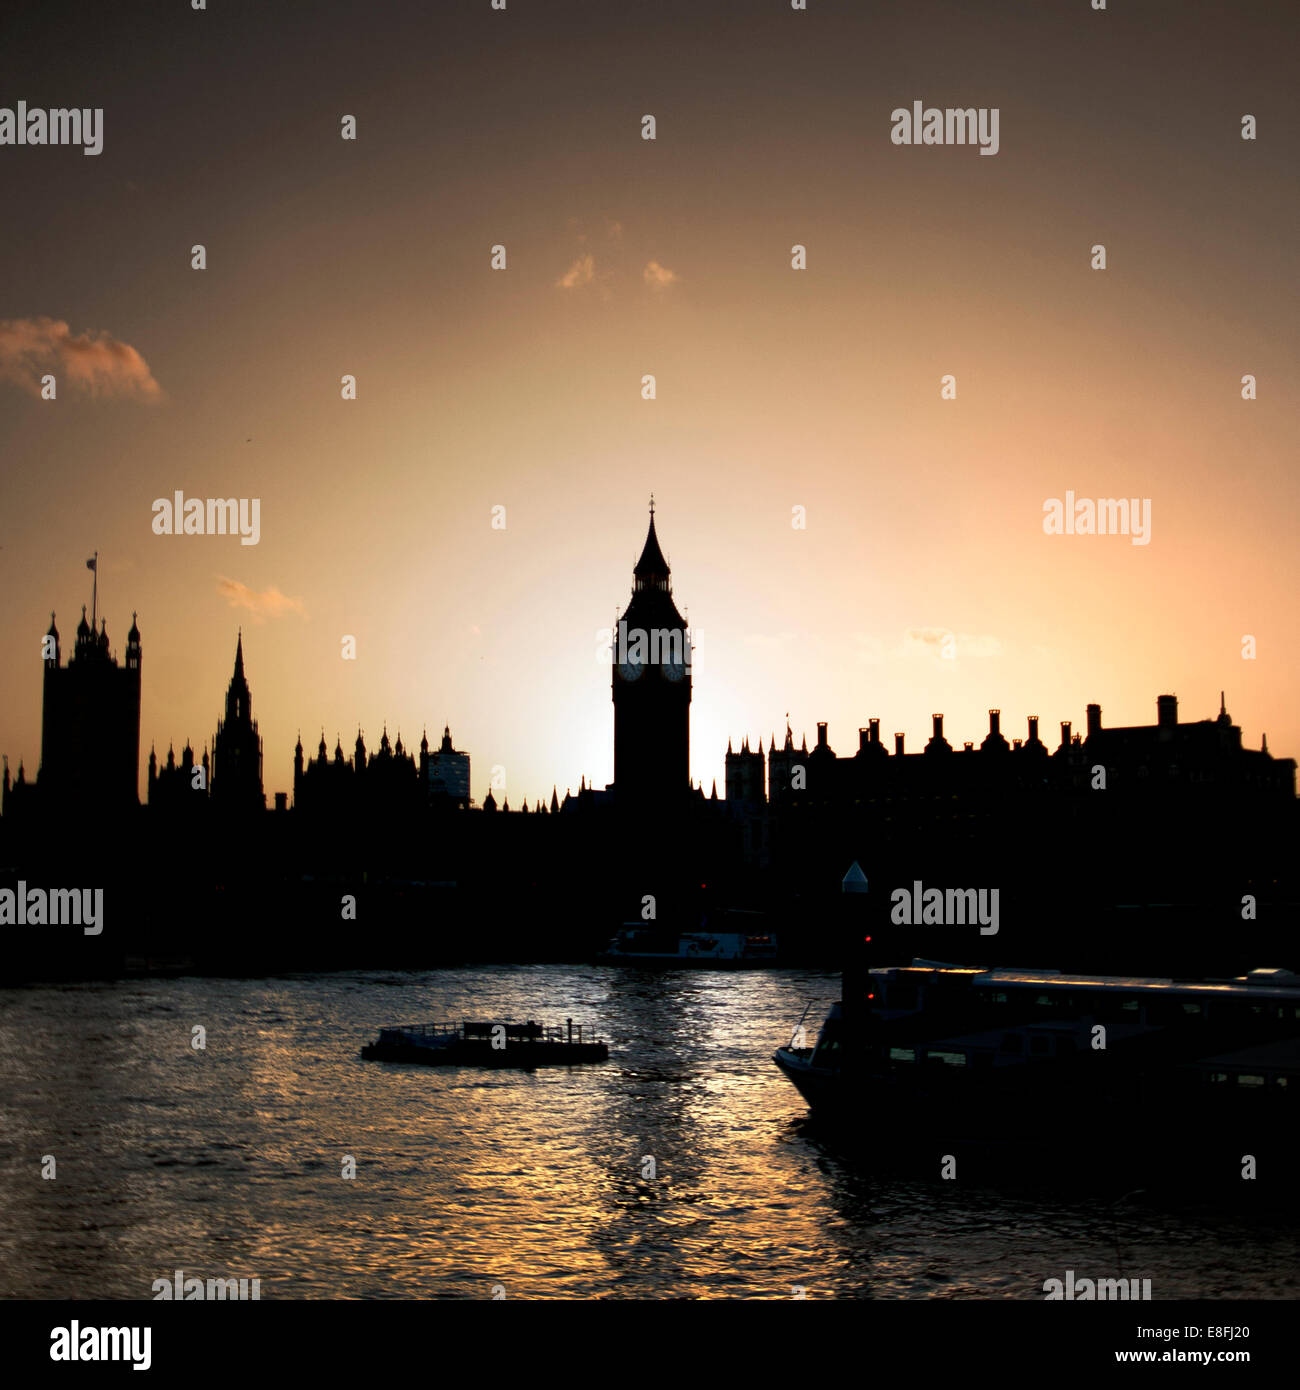 Houses of Parliament and Big Ben at sunset, London, England, United Kingdom Stock Photo